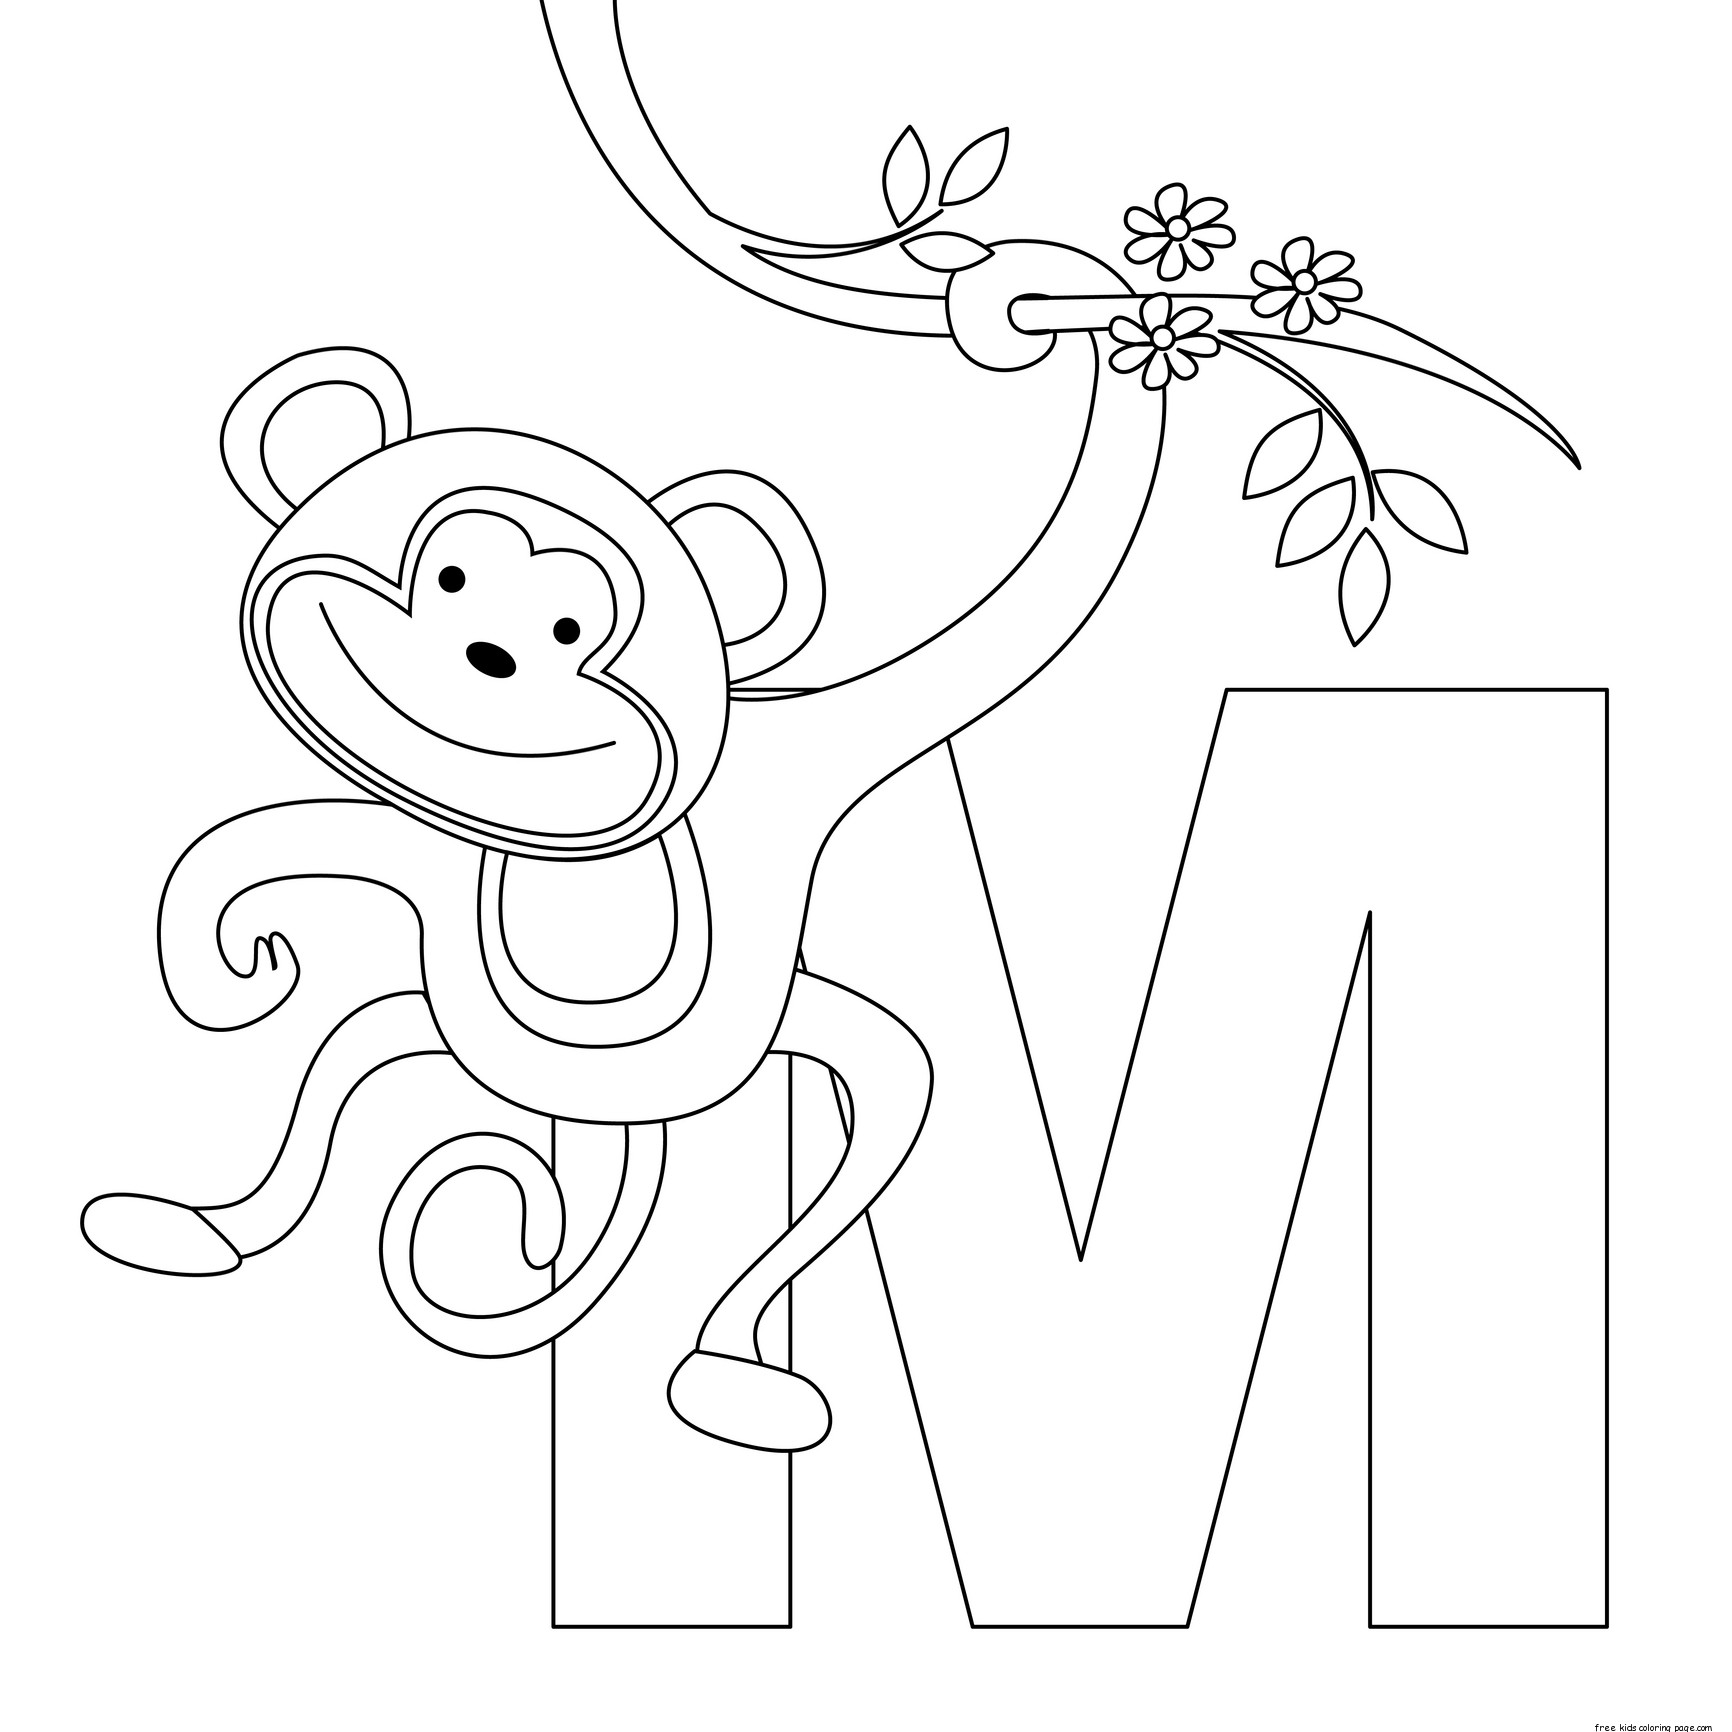 Printable Animal Alphabet Letters M Coloring Pagesfree Printable Coloring Pages For Kids